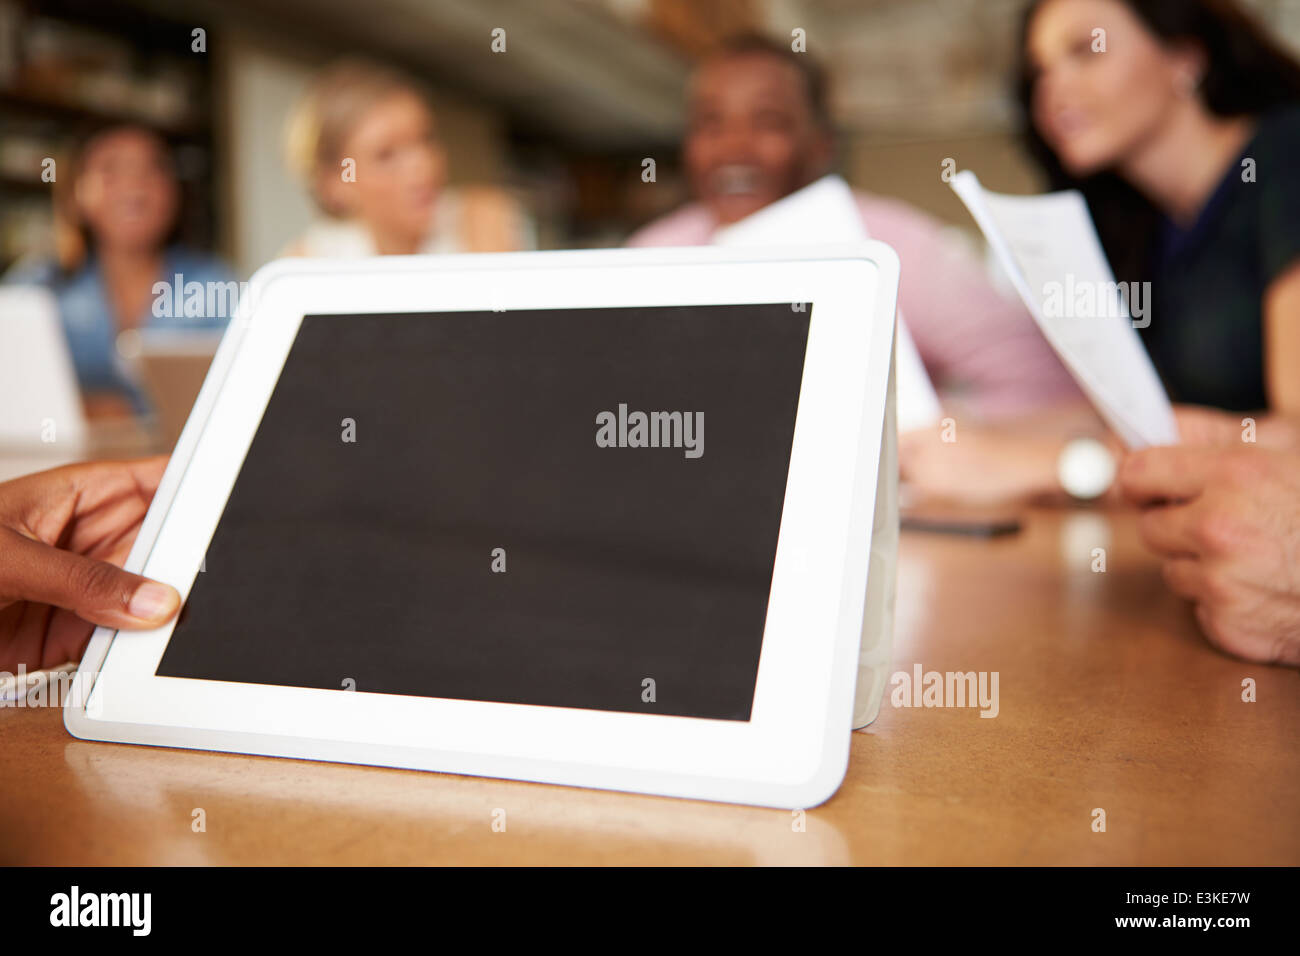 Digital Tablet Being Used By Architect In Meeting - Stock Image